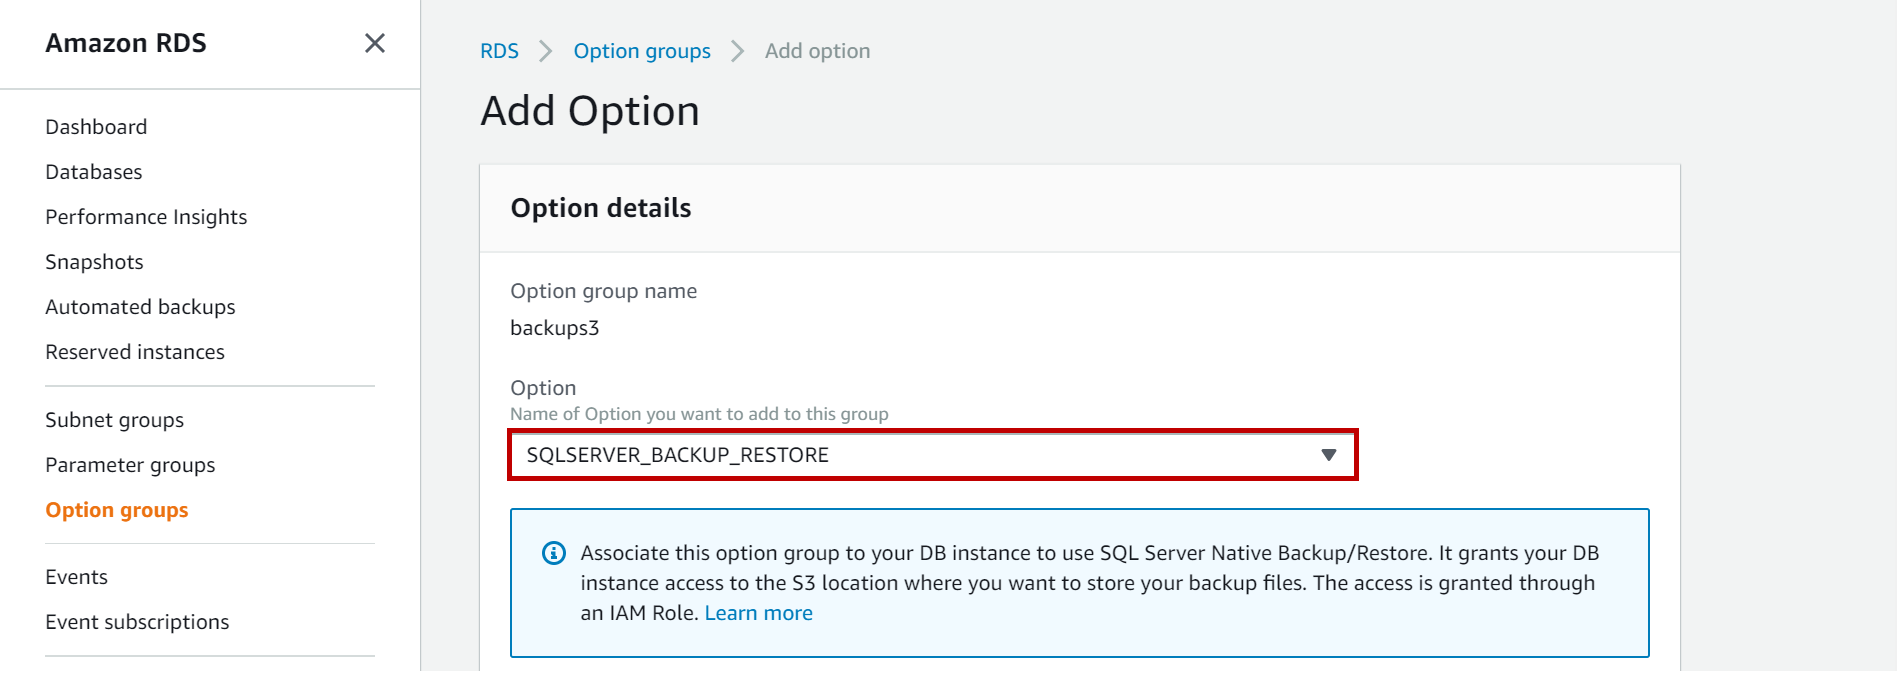 SQLSERVER_BACKUP_RESTORE option